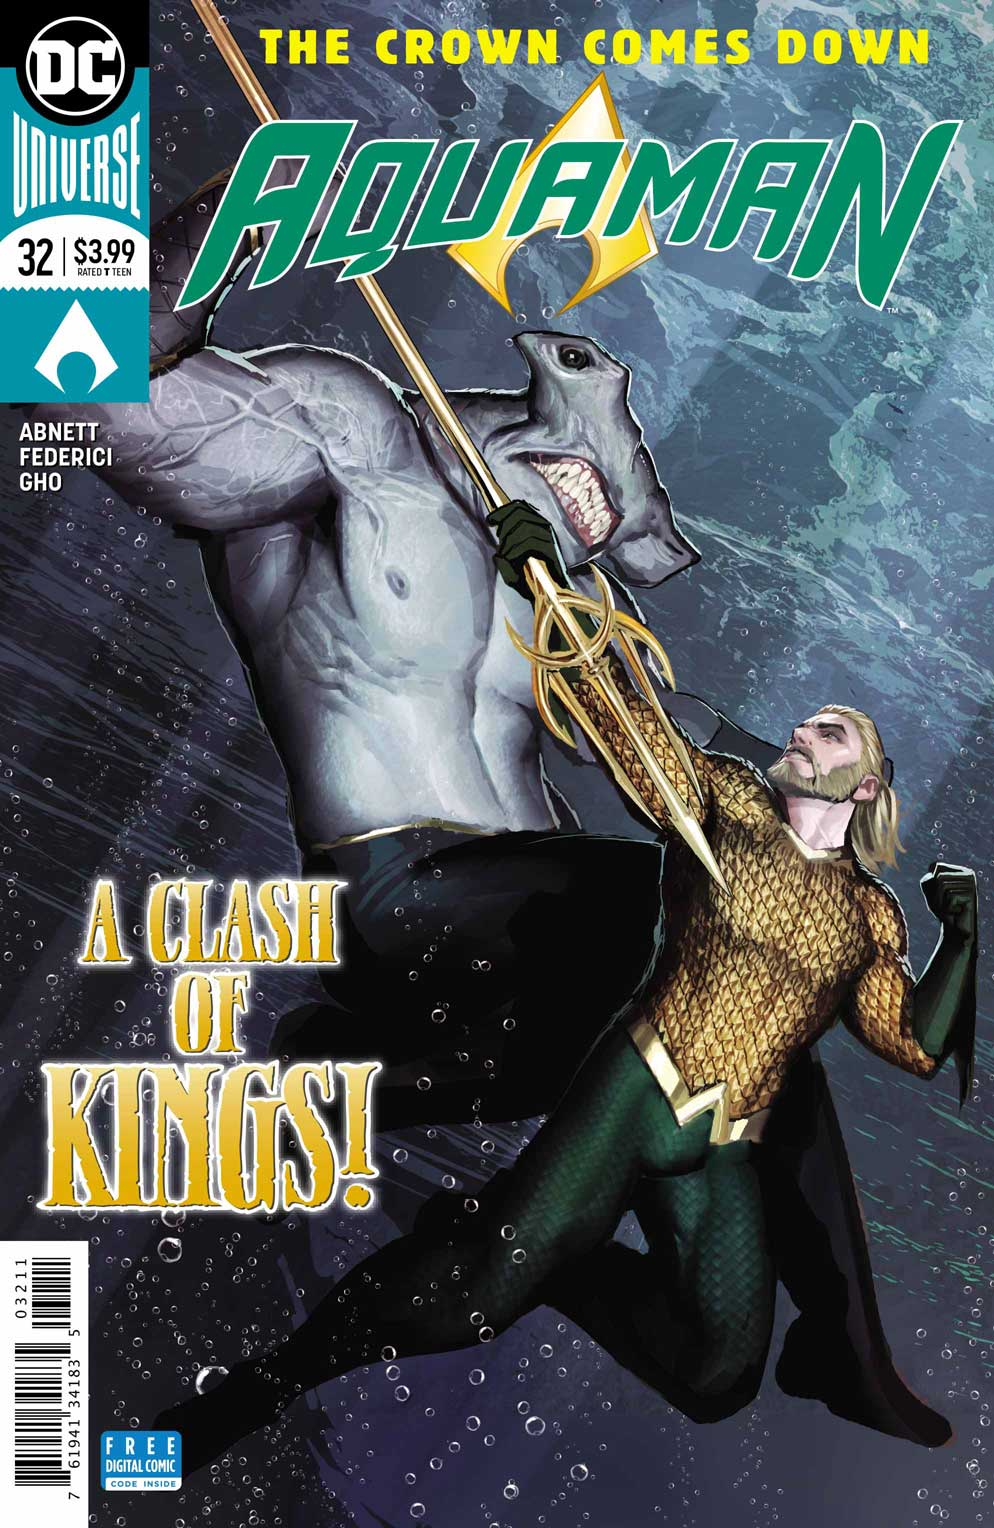 Aquaman 32 - DC Comics News